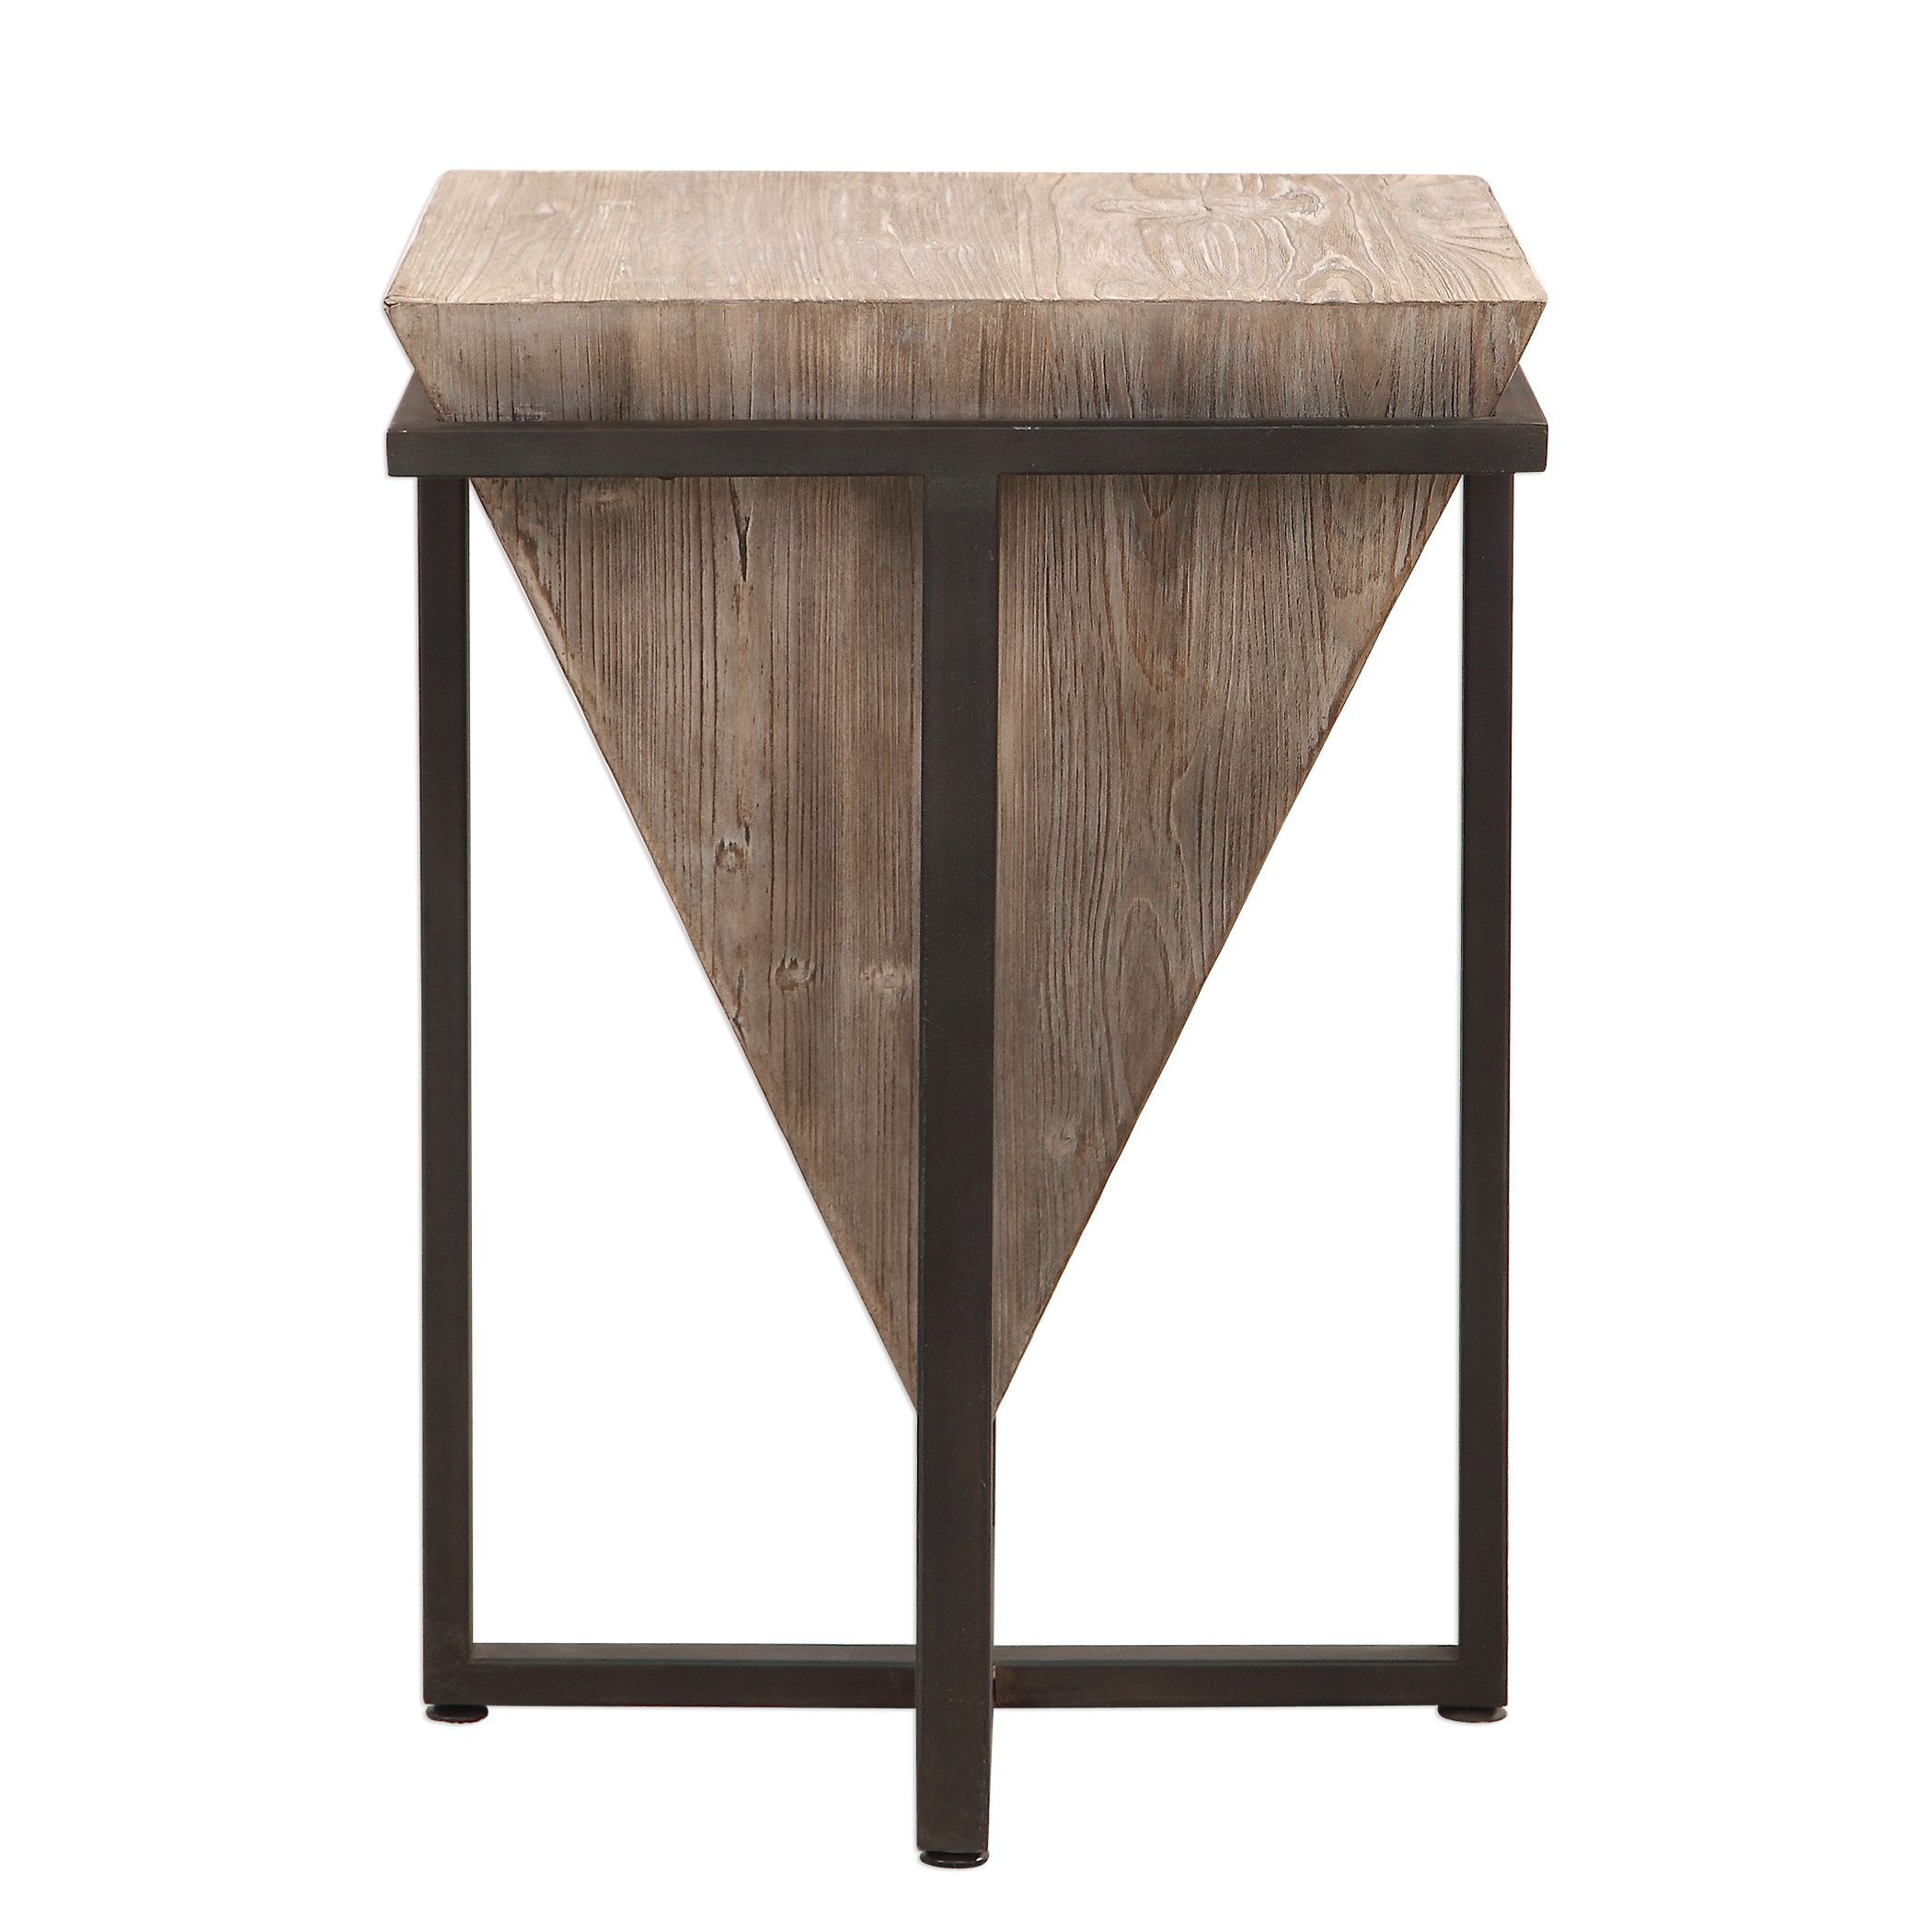 bertrand contemporary gray wash wood accent table uttermost tables coffee toronto target floor rugs black drum modern dining carpet edge strip ikea furniture nightstand lamps